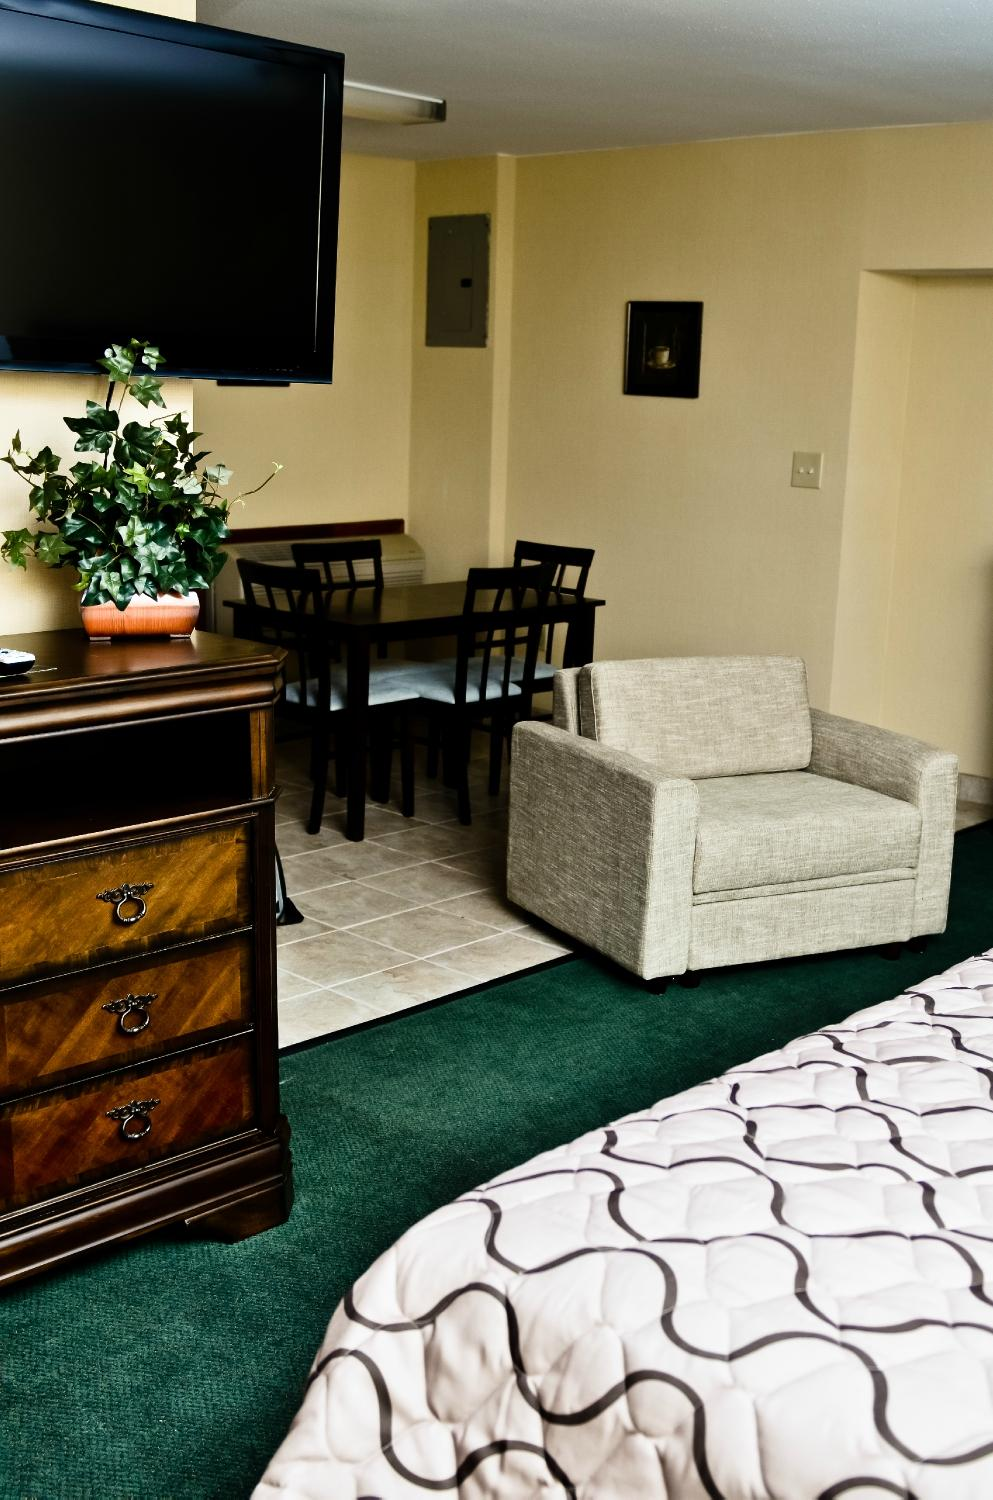 Pacer Inn and Suites